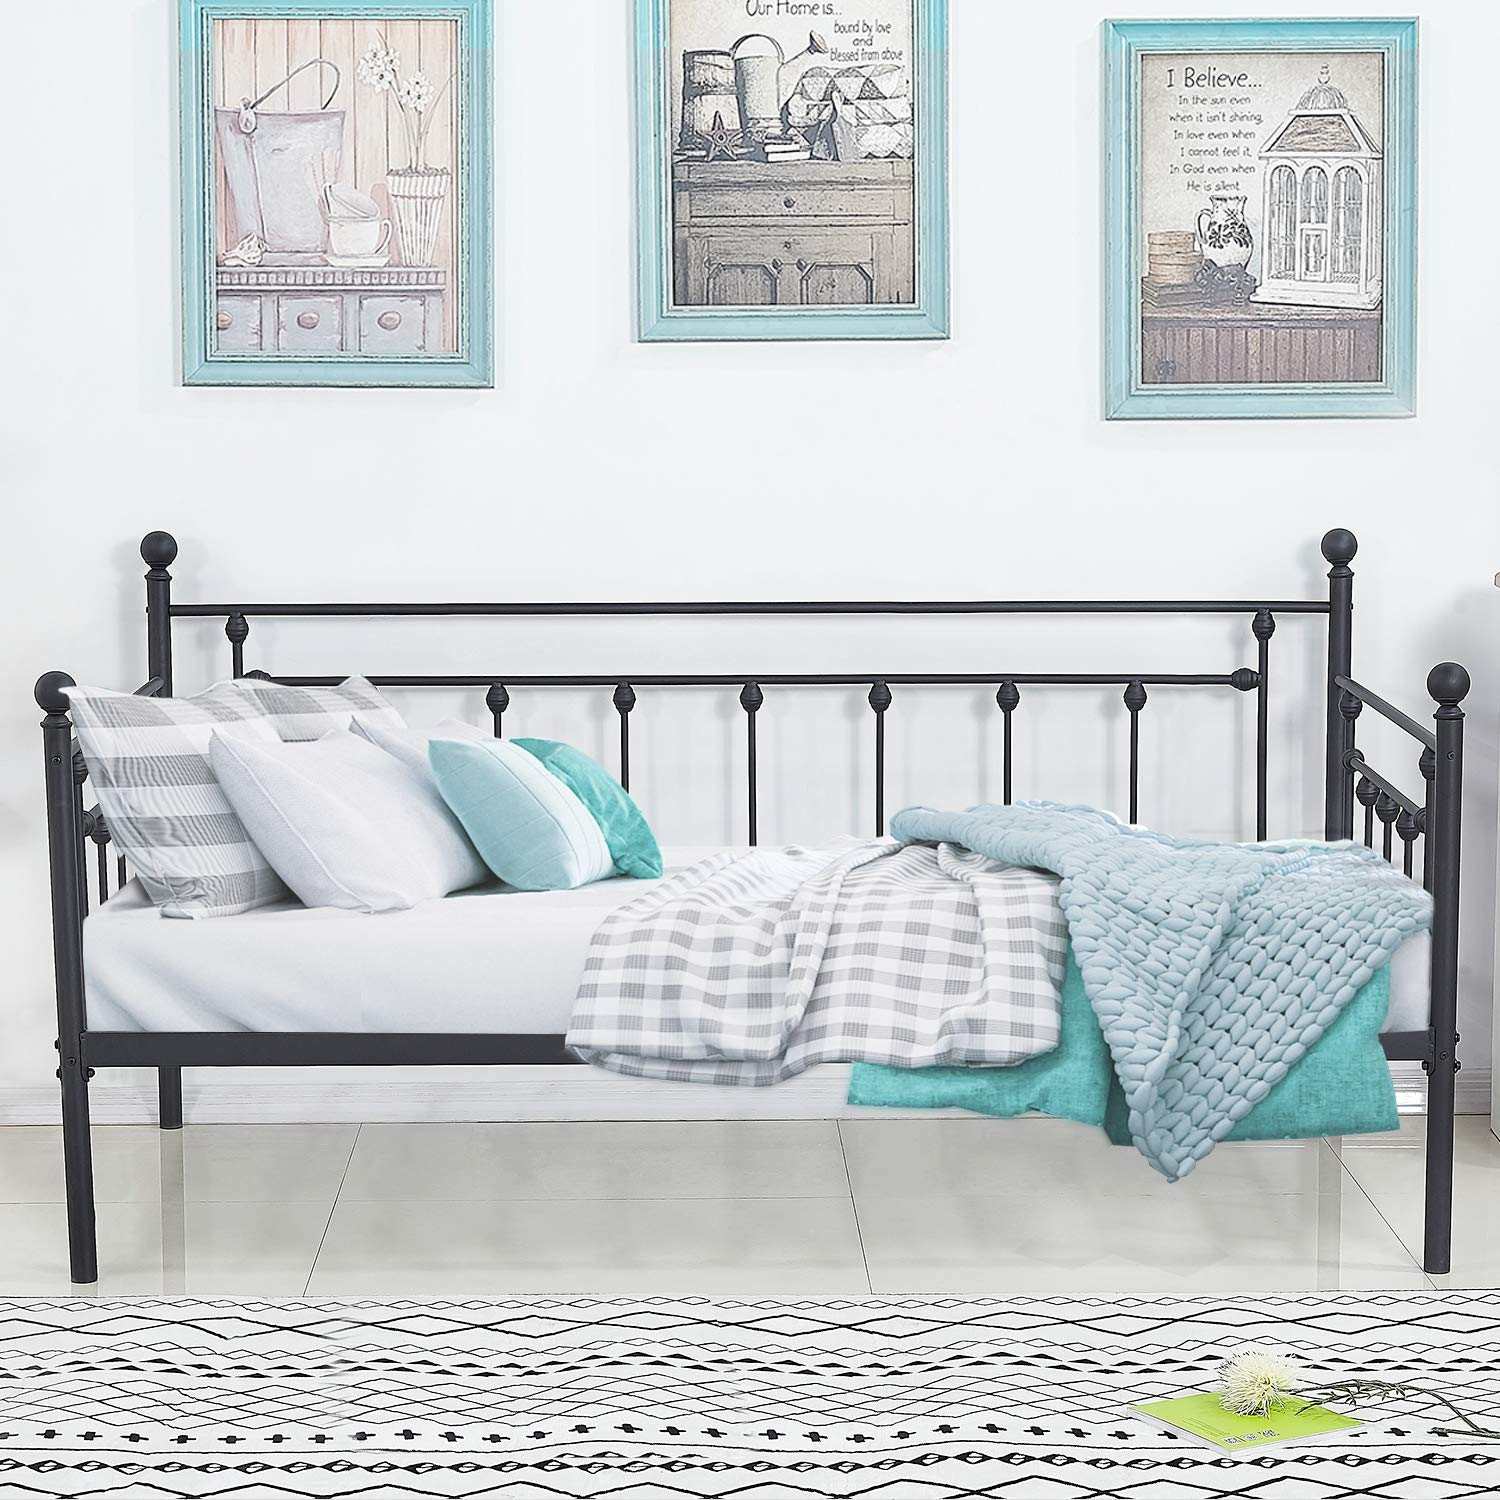 VECELO Daybed Frame Twin Size Multifunctional Metal Platform with Headboard Victorian Style,Mattress Foundation/Children Bed Sofa for Guest Living Room, Black by VECELO